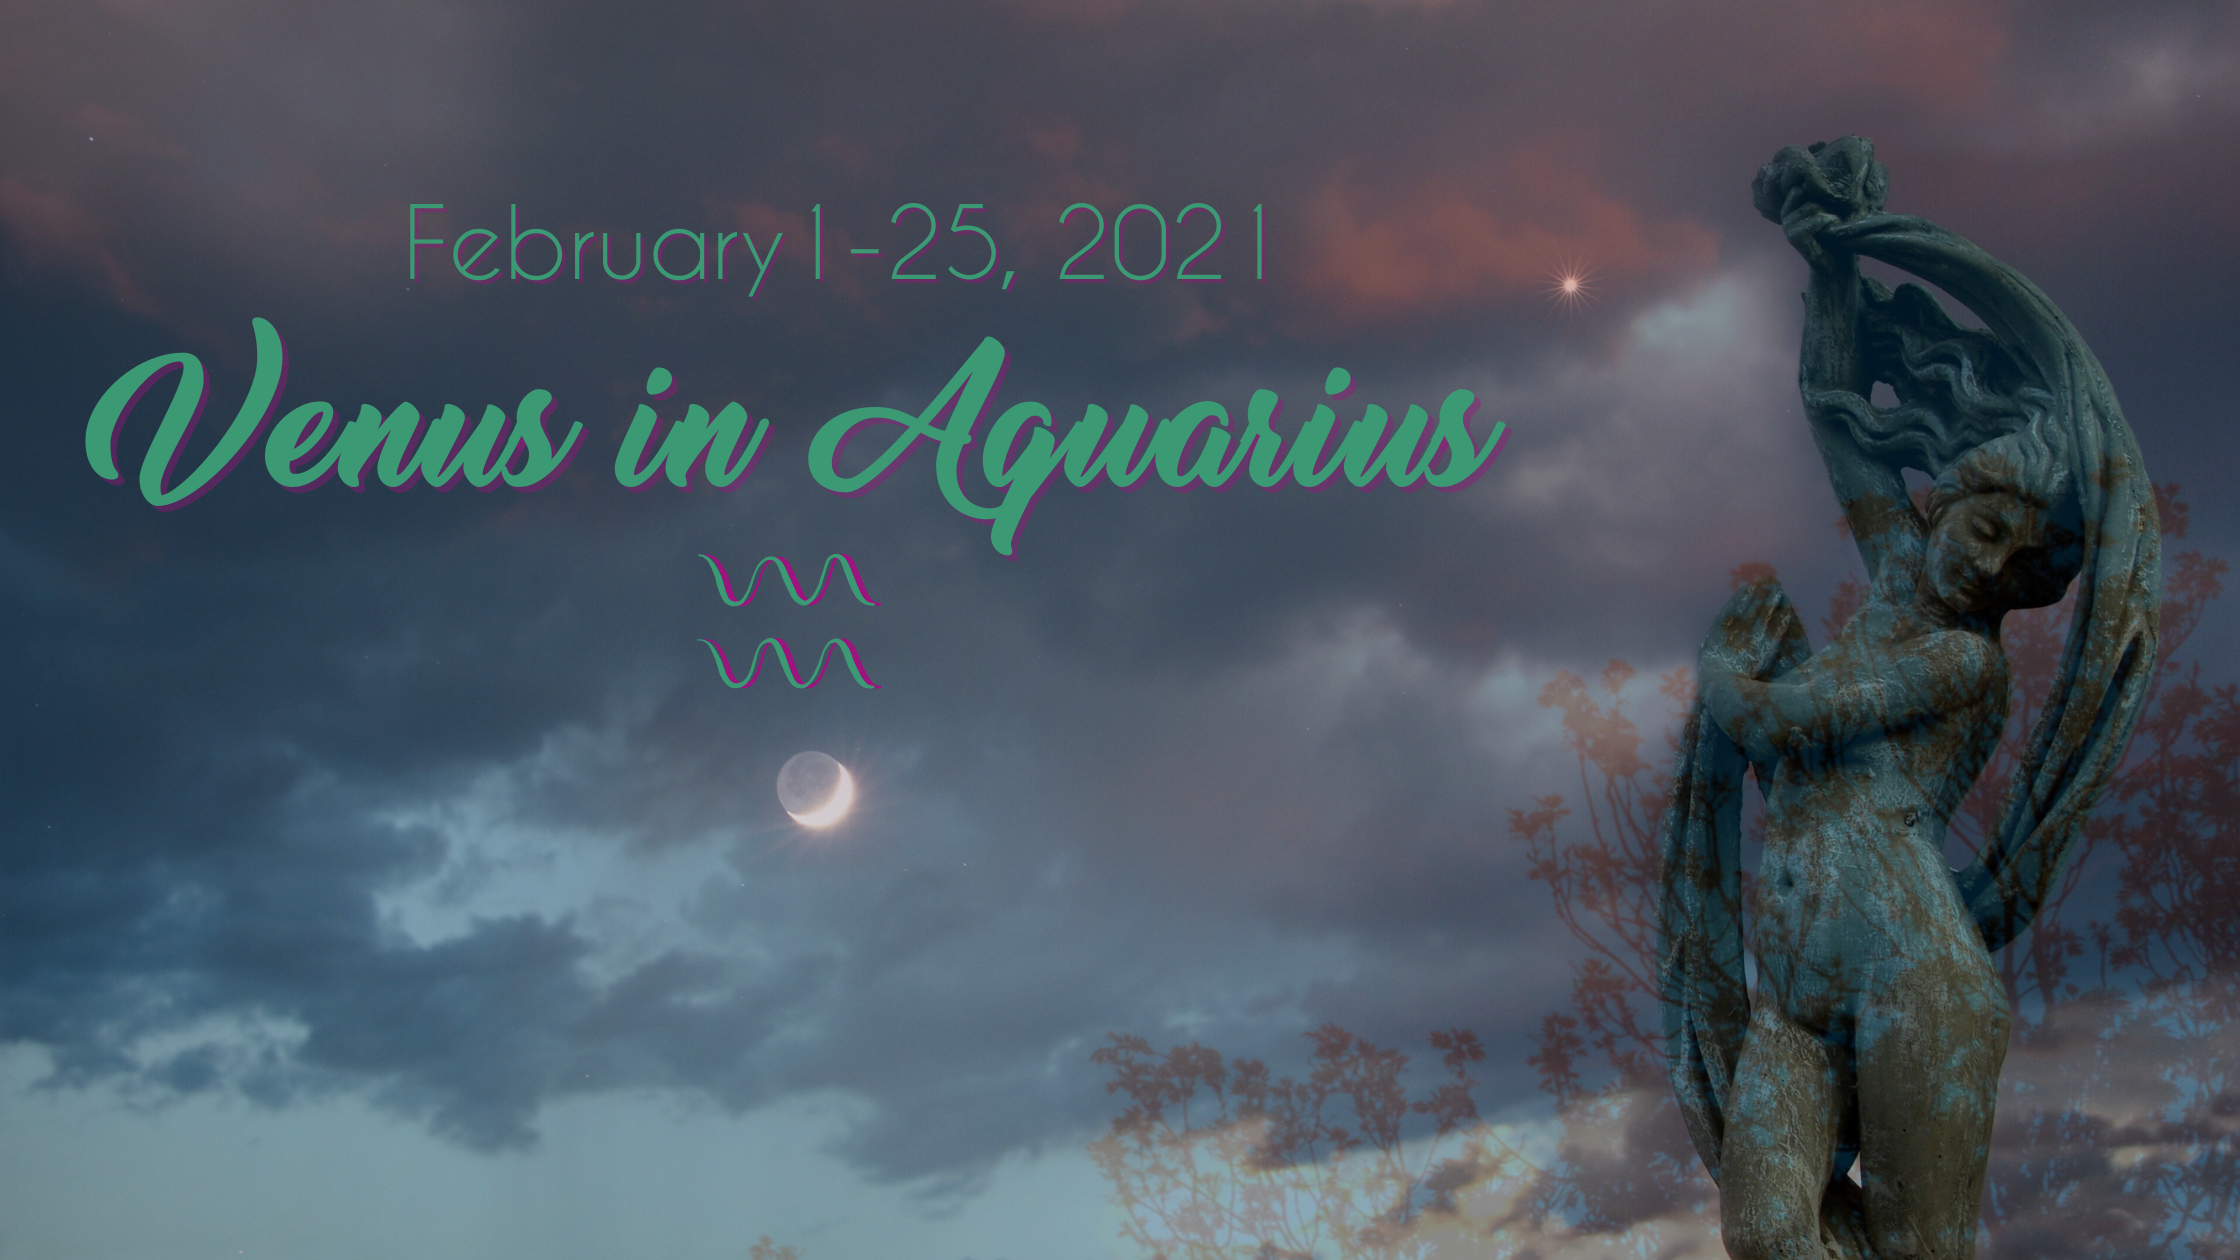 Venus in Aquarius – February 1-25